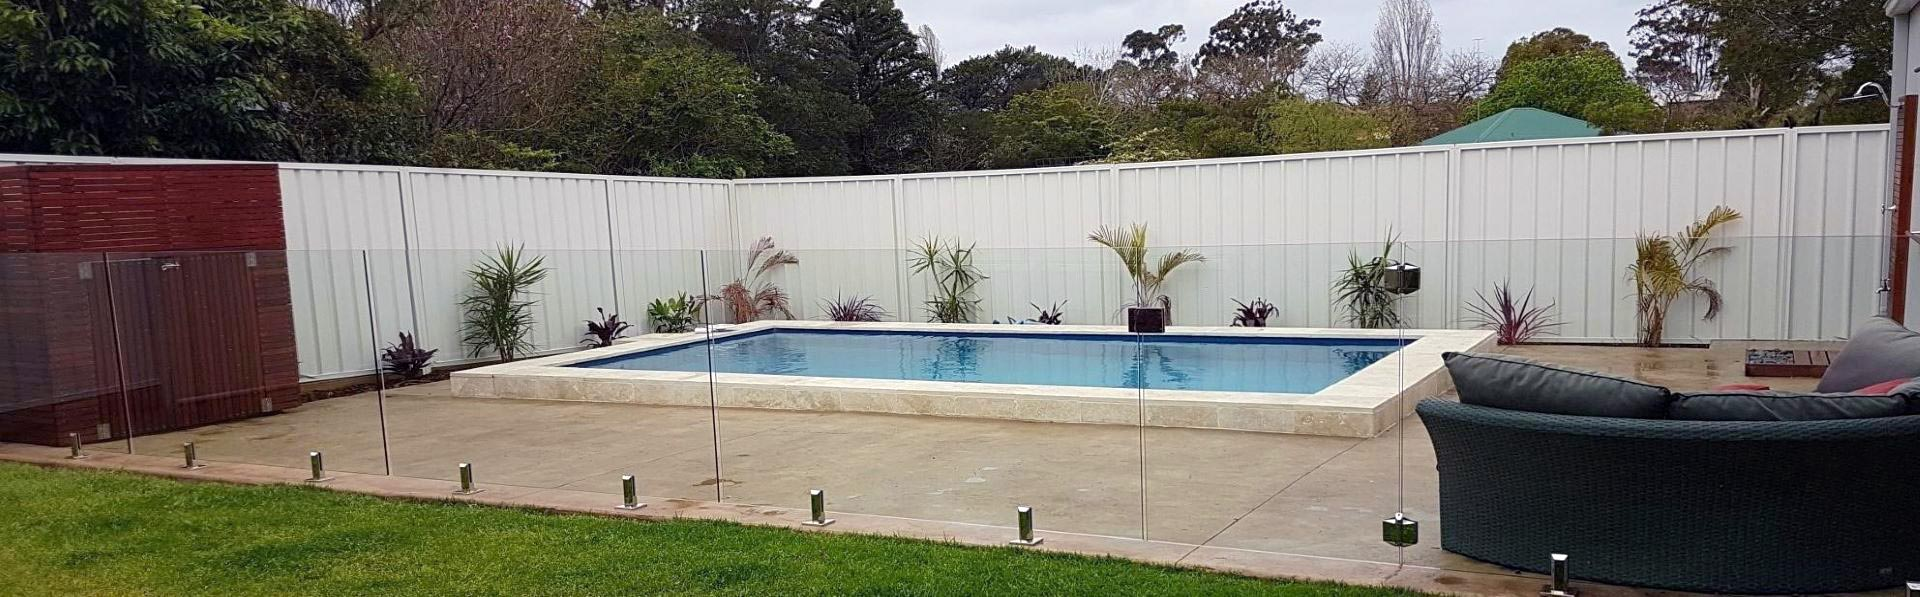 Above Ground Pools Semi Inground Pools Inground Pools Rectangle And Oval Shapes